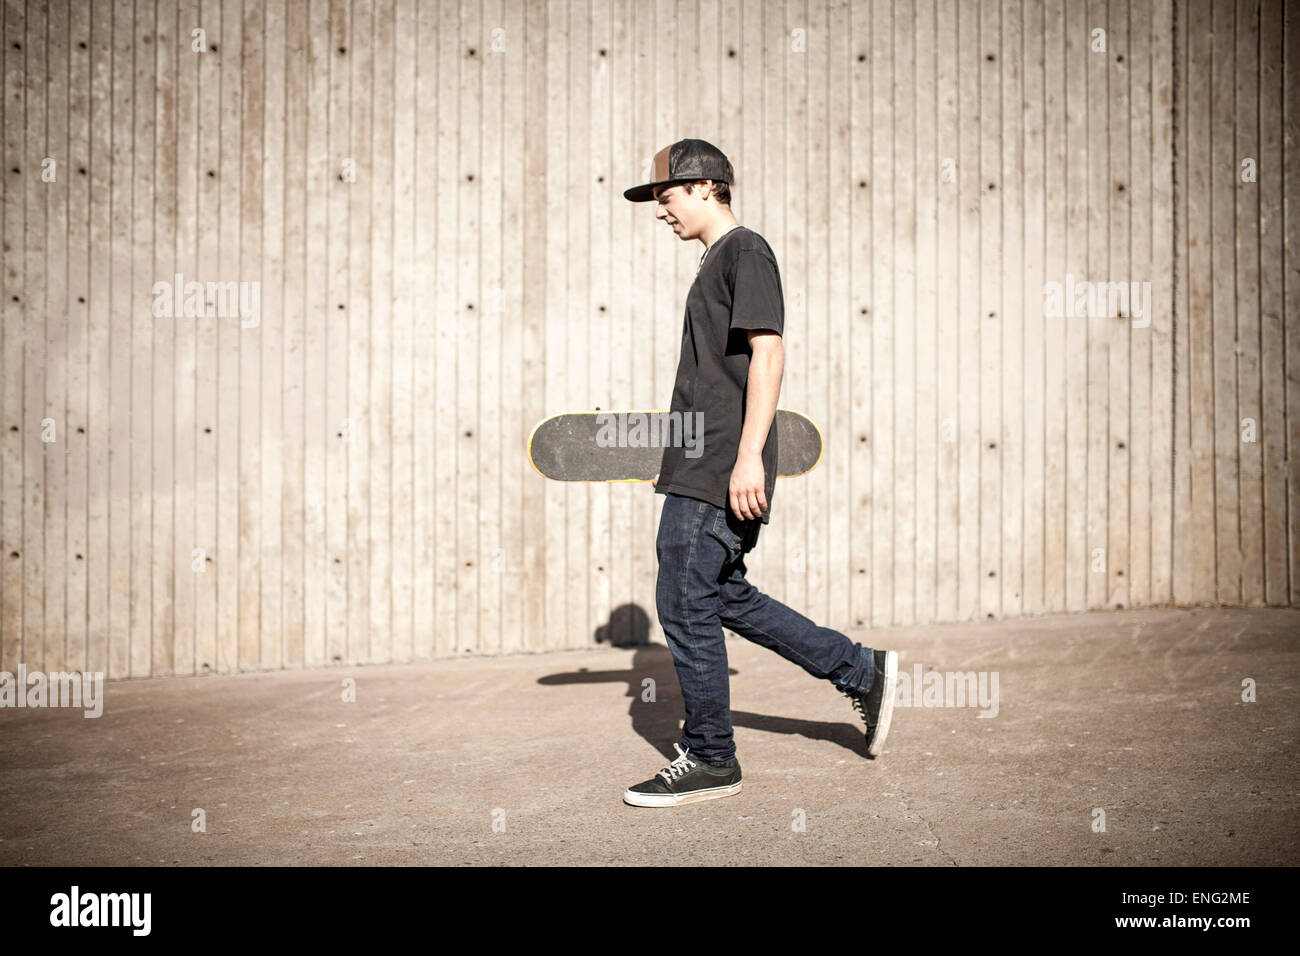 Caucasian man carrying skateboard near wooden wall - Stock Image